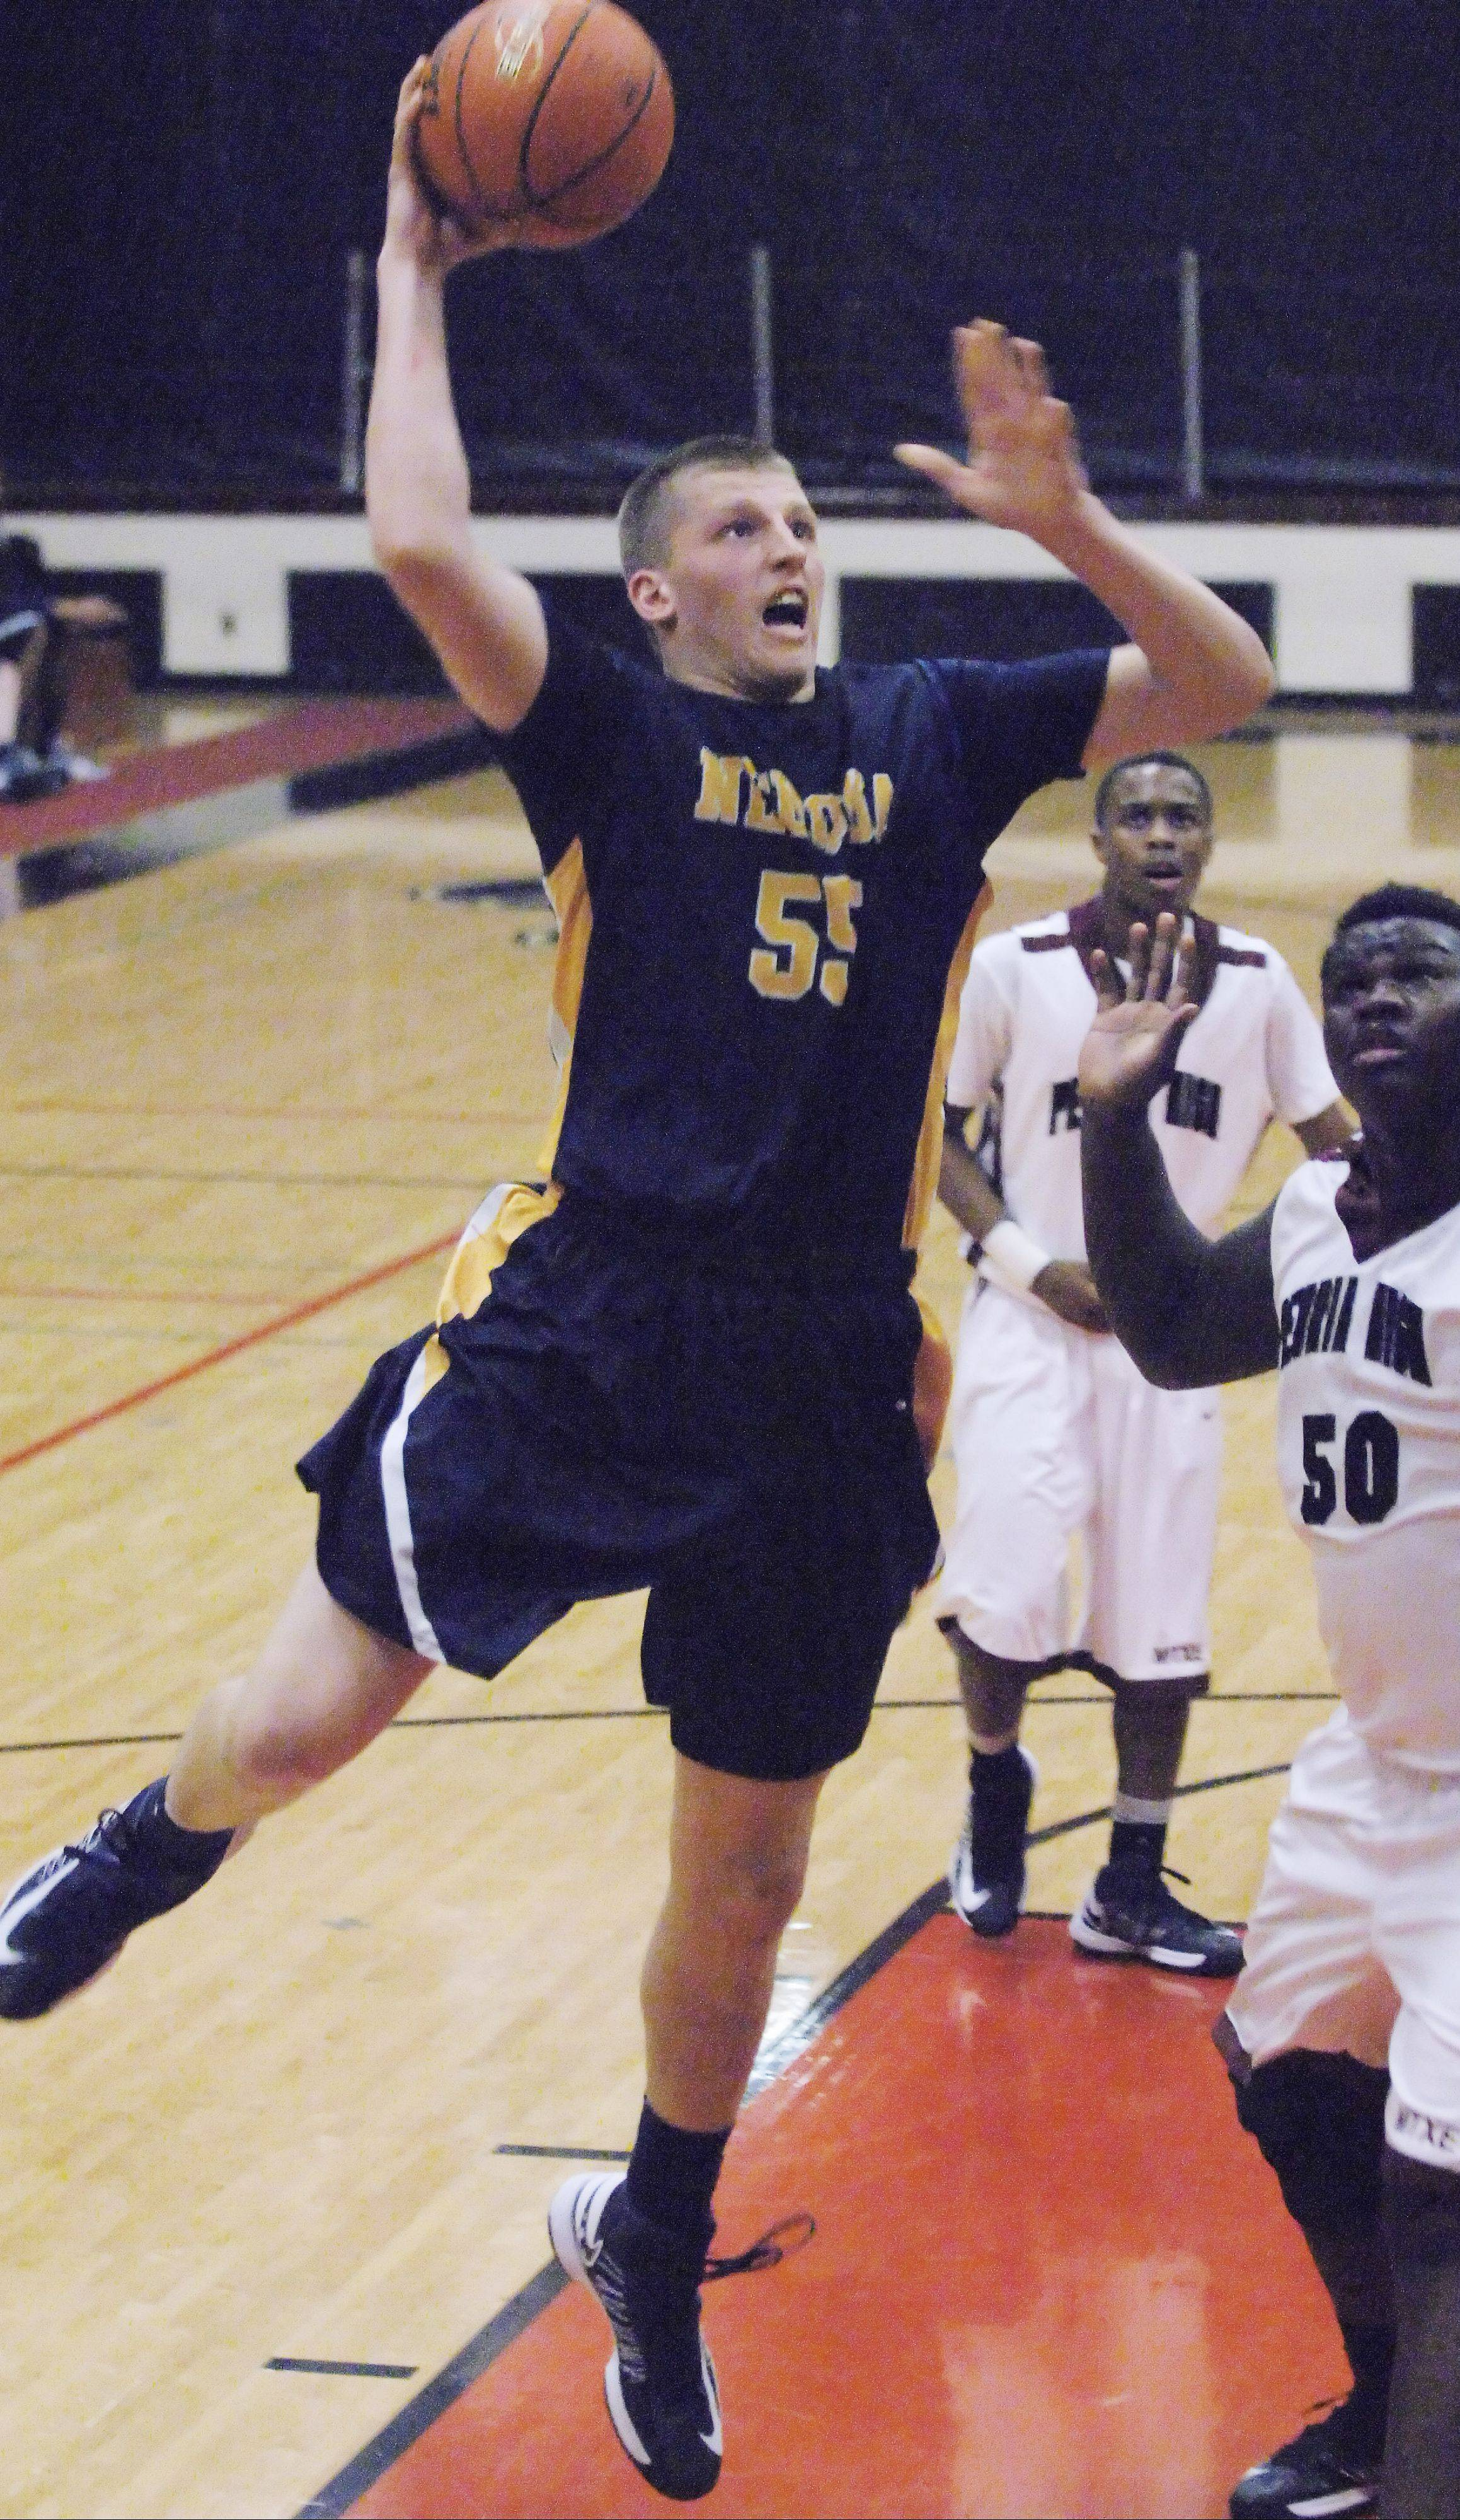 Neuqua Valley�s Pat Kenny takes the ball to the hoop against Peoria Central on Friday at East Aurora.